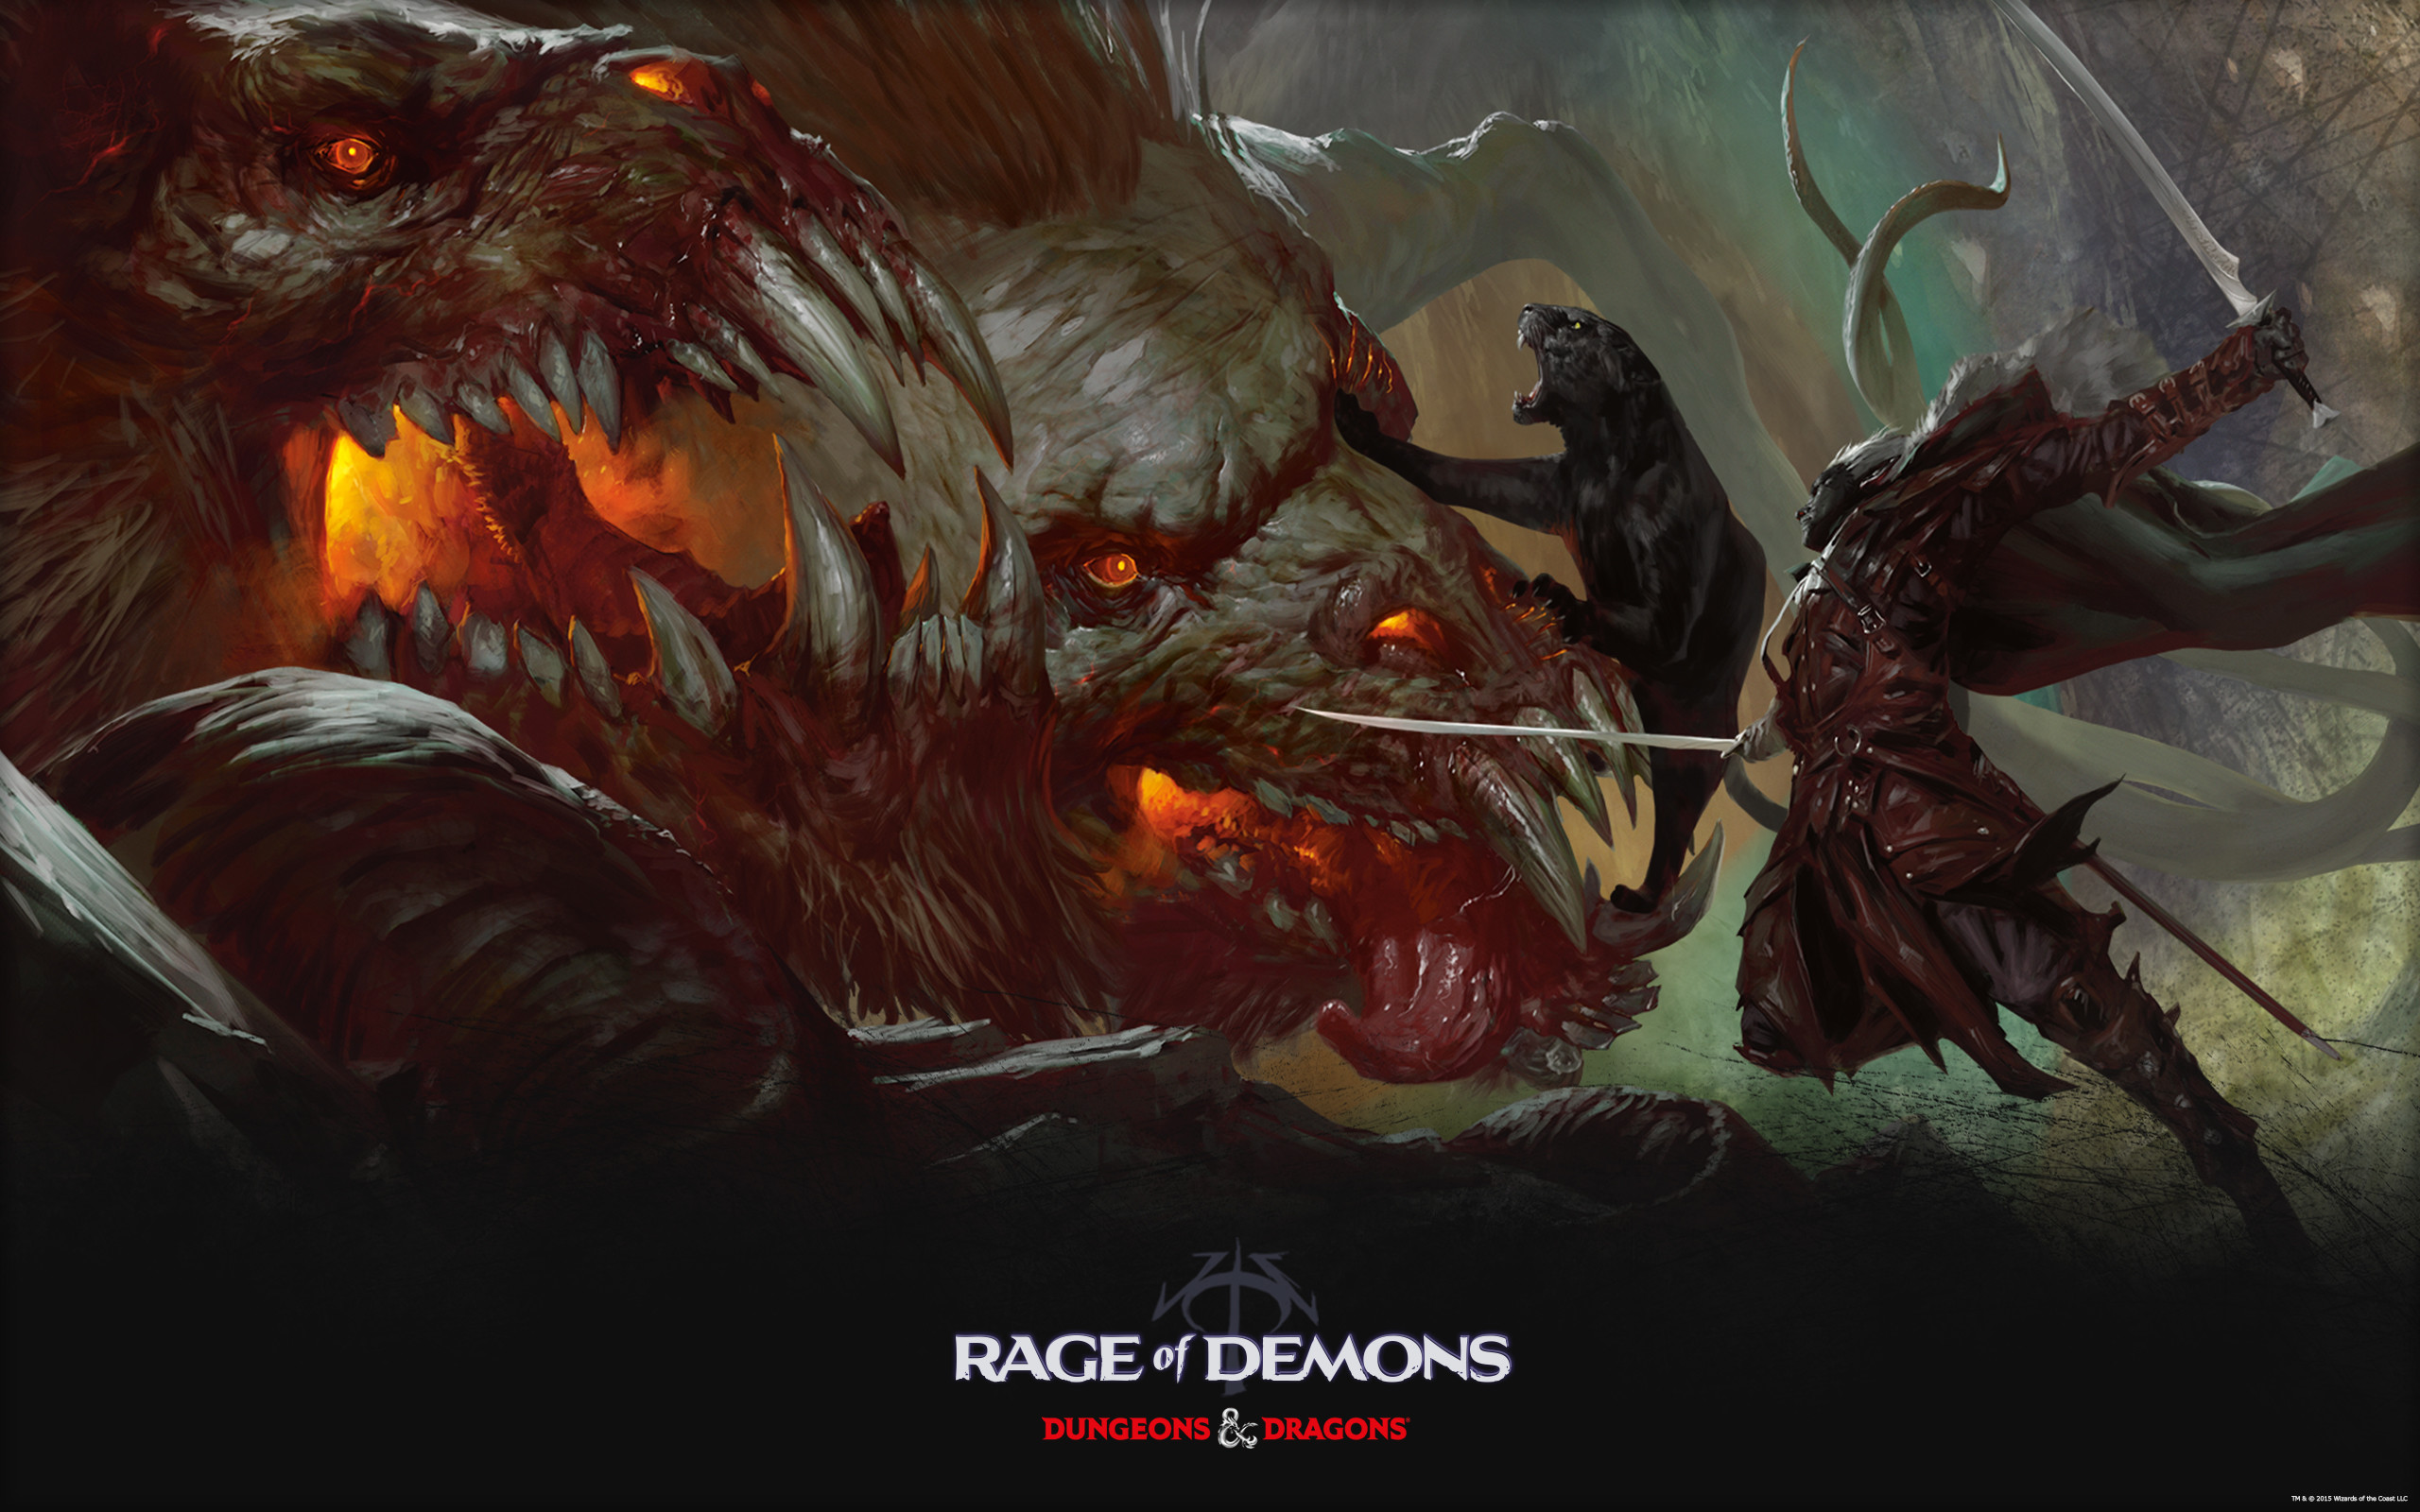 Rage of Demons, a new Dungeons & Dragons Storyline, Coming This Fall